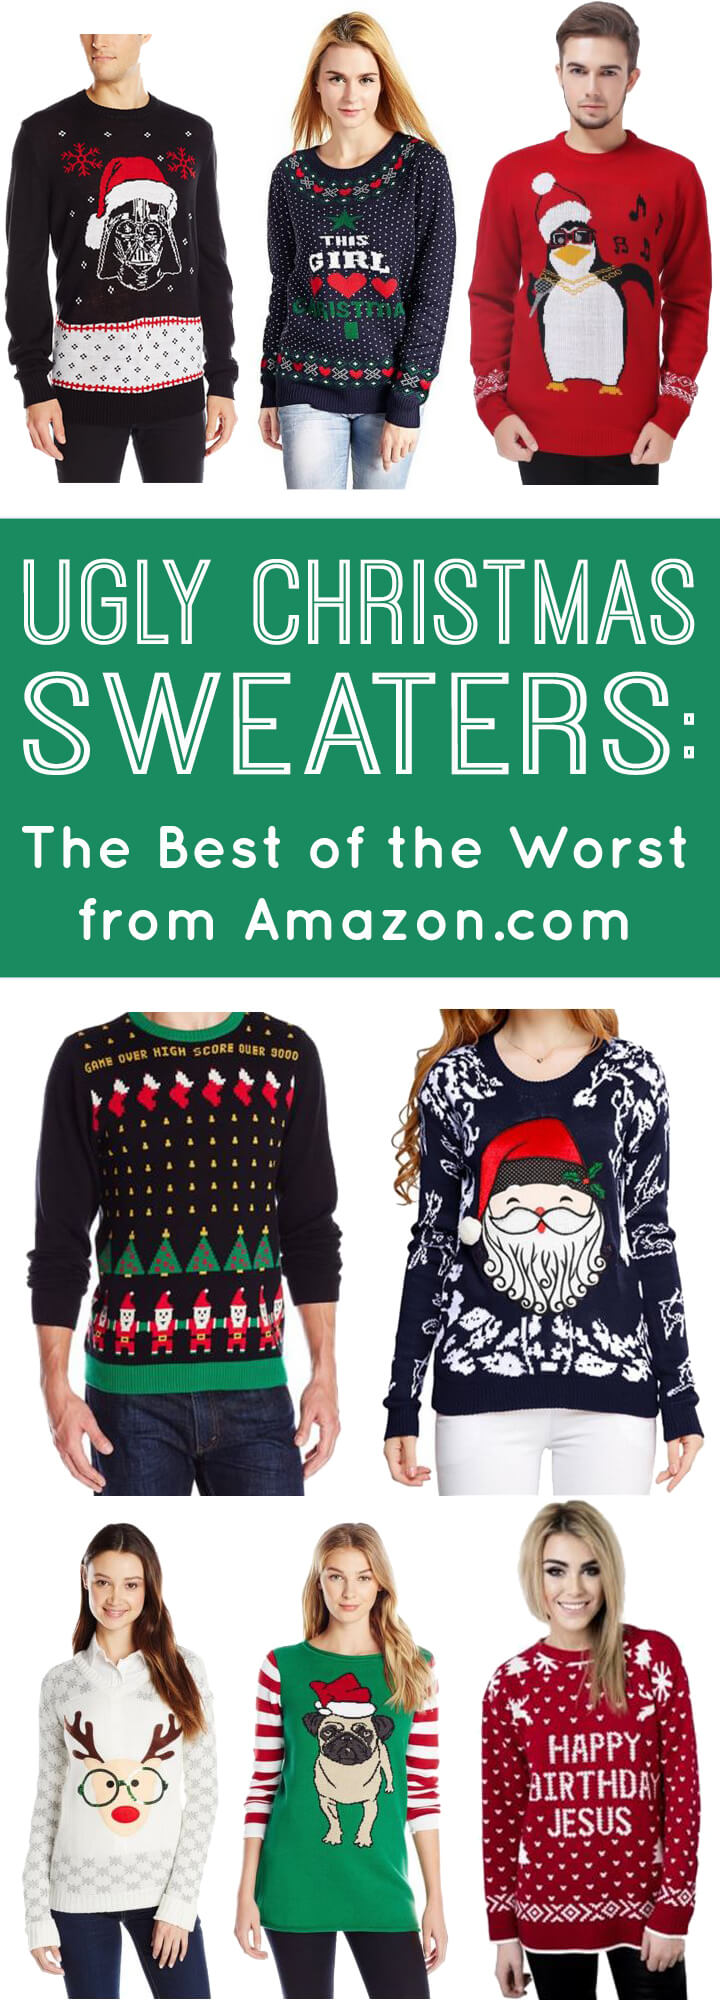 Ugly Christmas Sweaters from Amazon